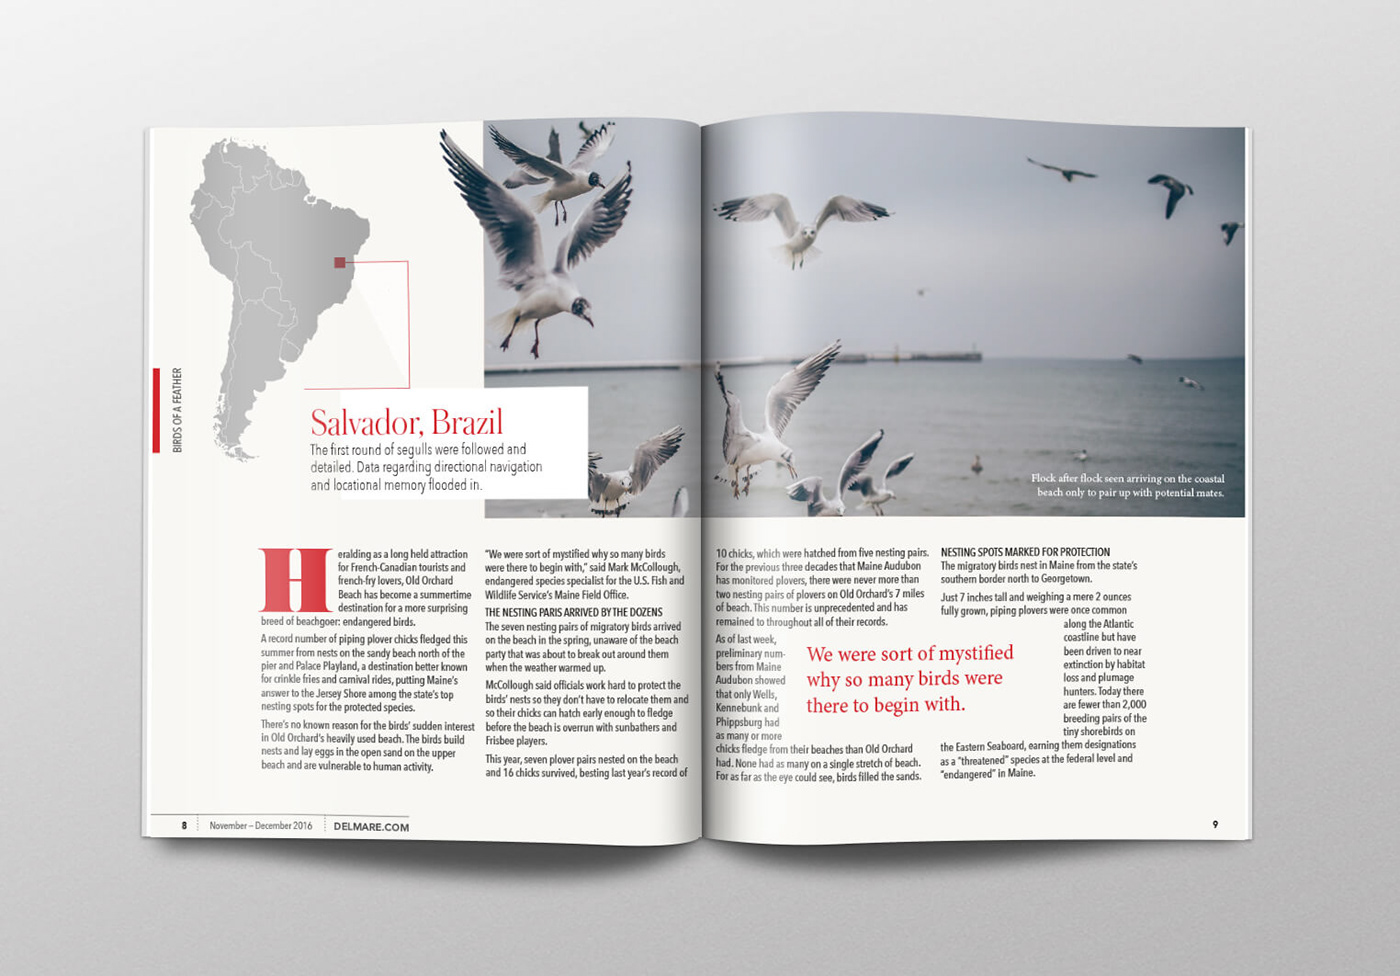 Magazine Layouts On Behance Piping Layout Meaning 2016